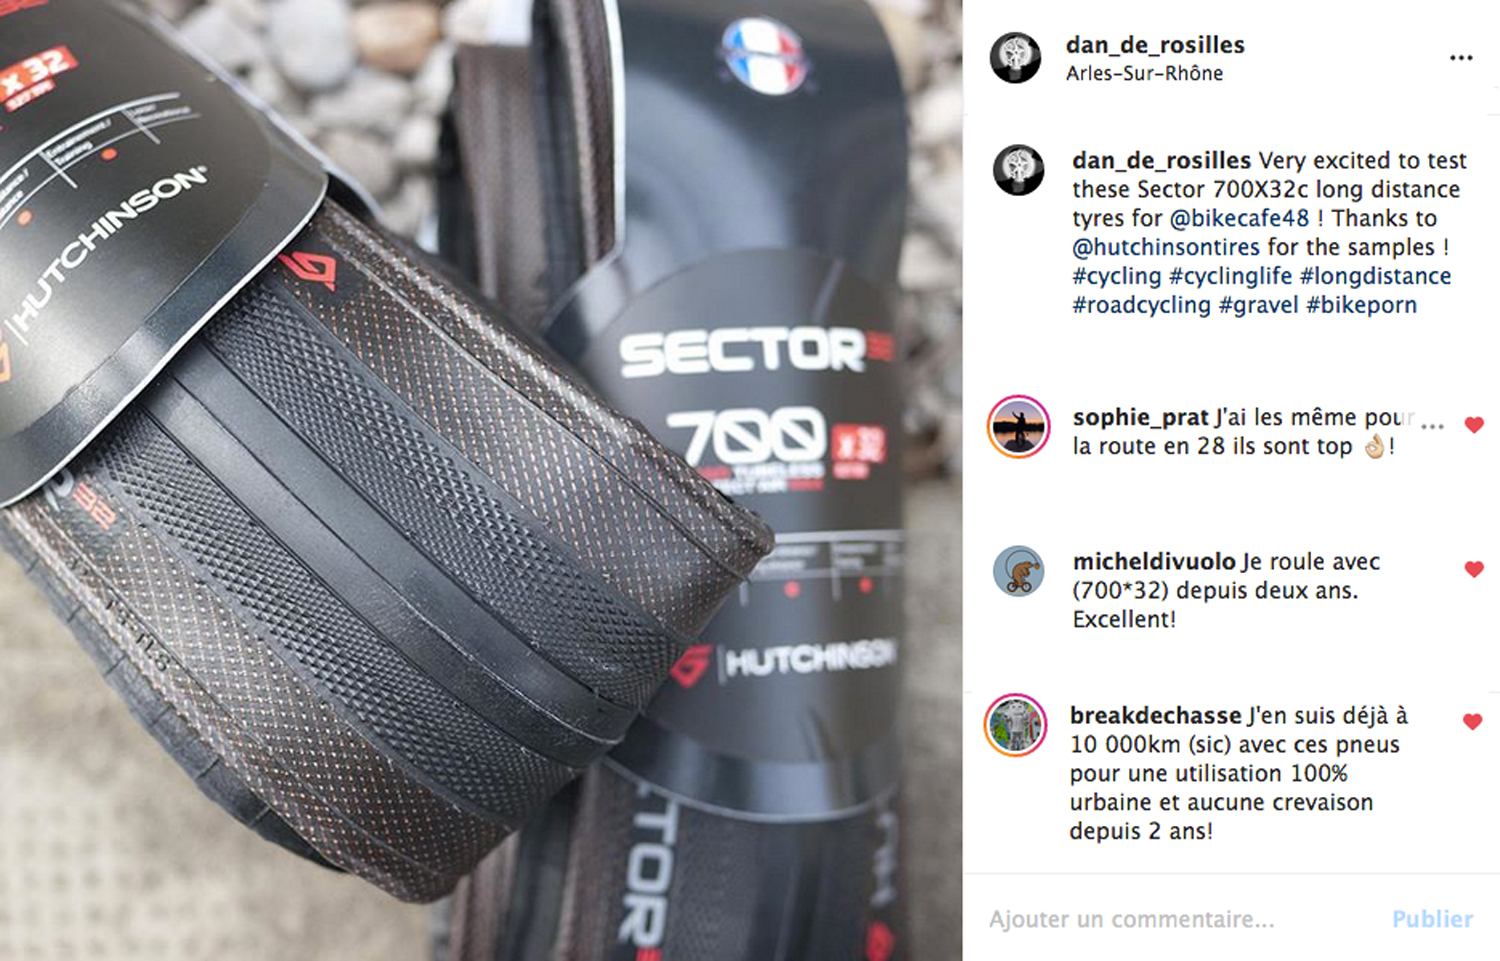 Hutchinson Sector tyre 700X32c gravel long distance all around allroad cycling Instagram